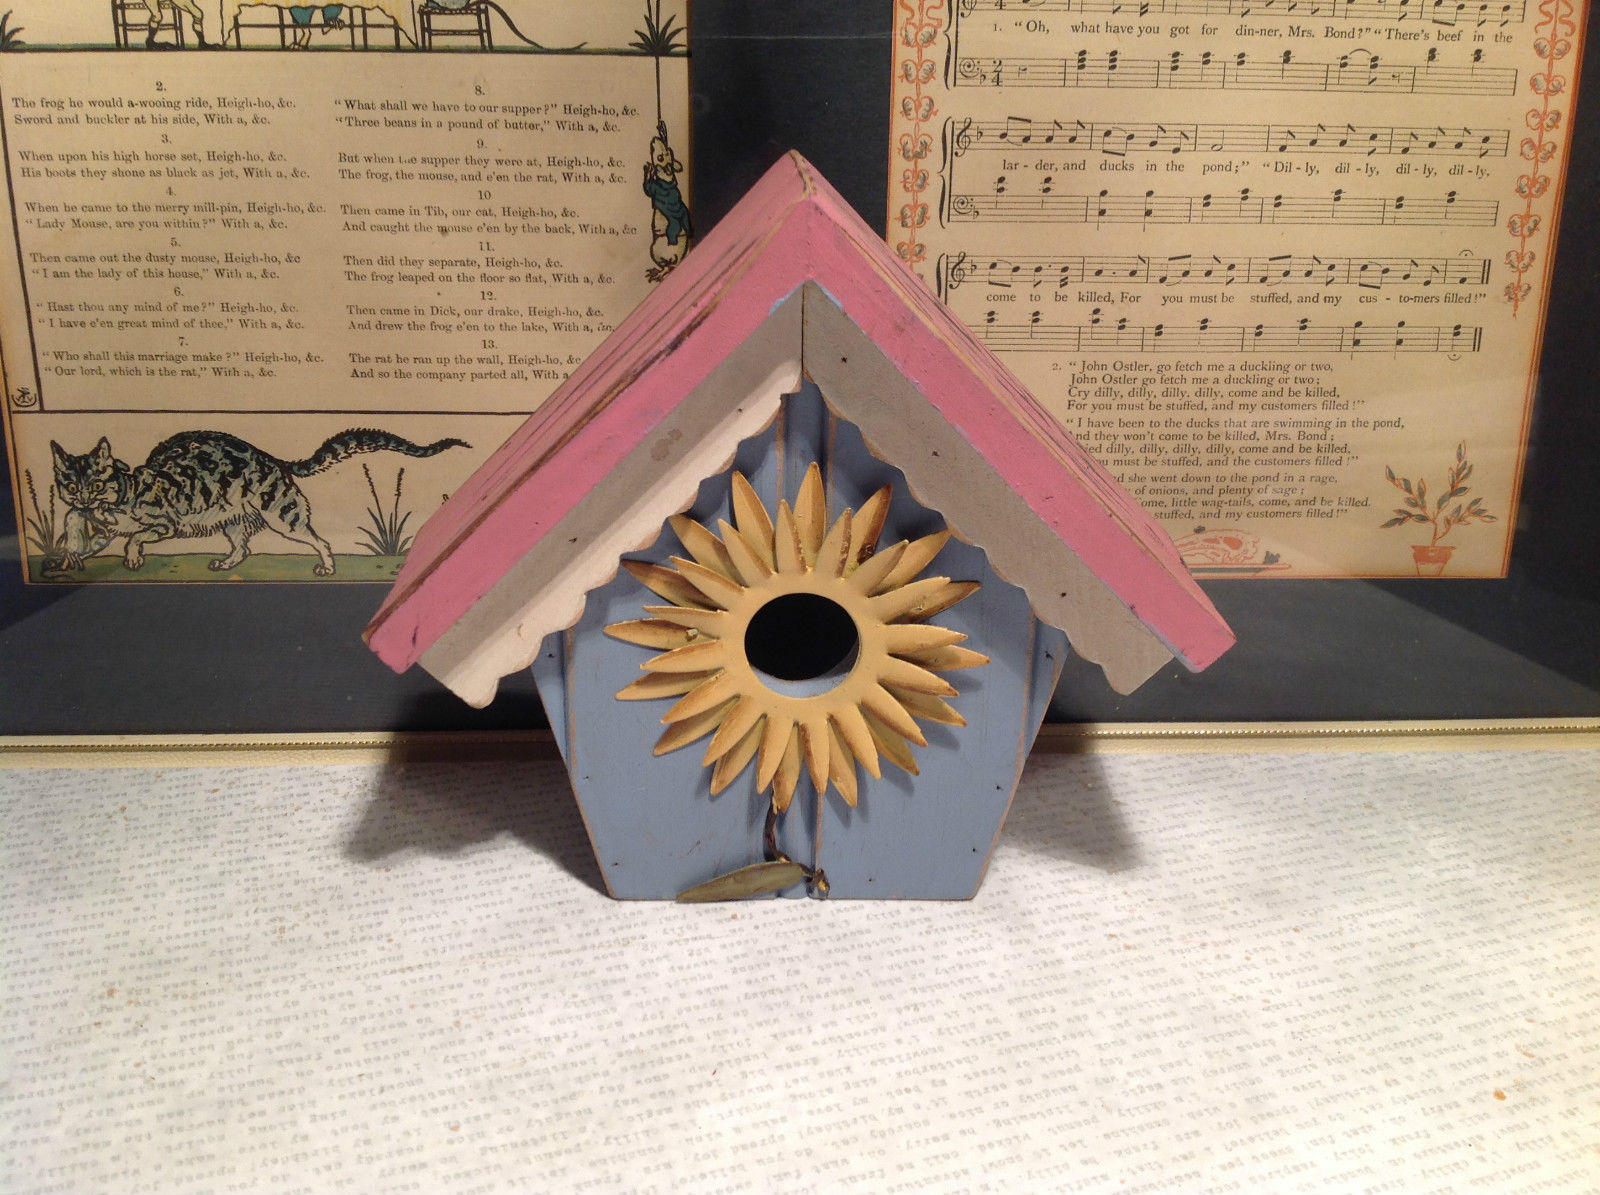 Rustic Pink and Blue Faux Bird House with Yellow Flower Wall Decoration